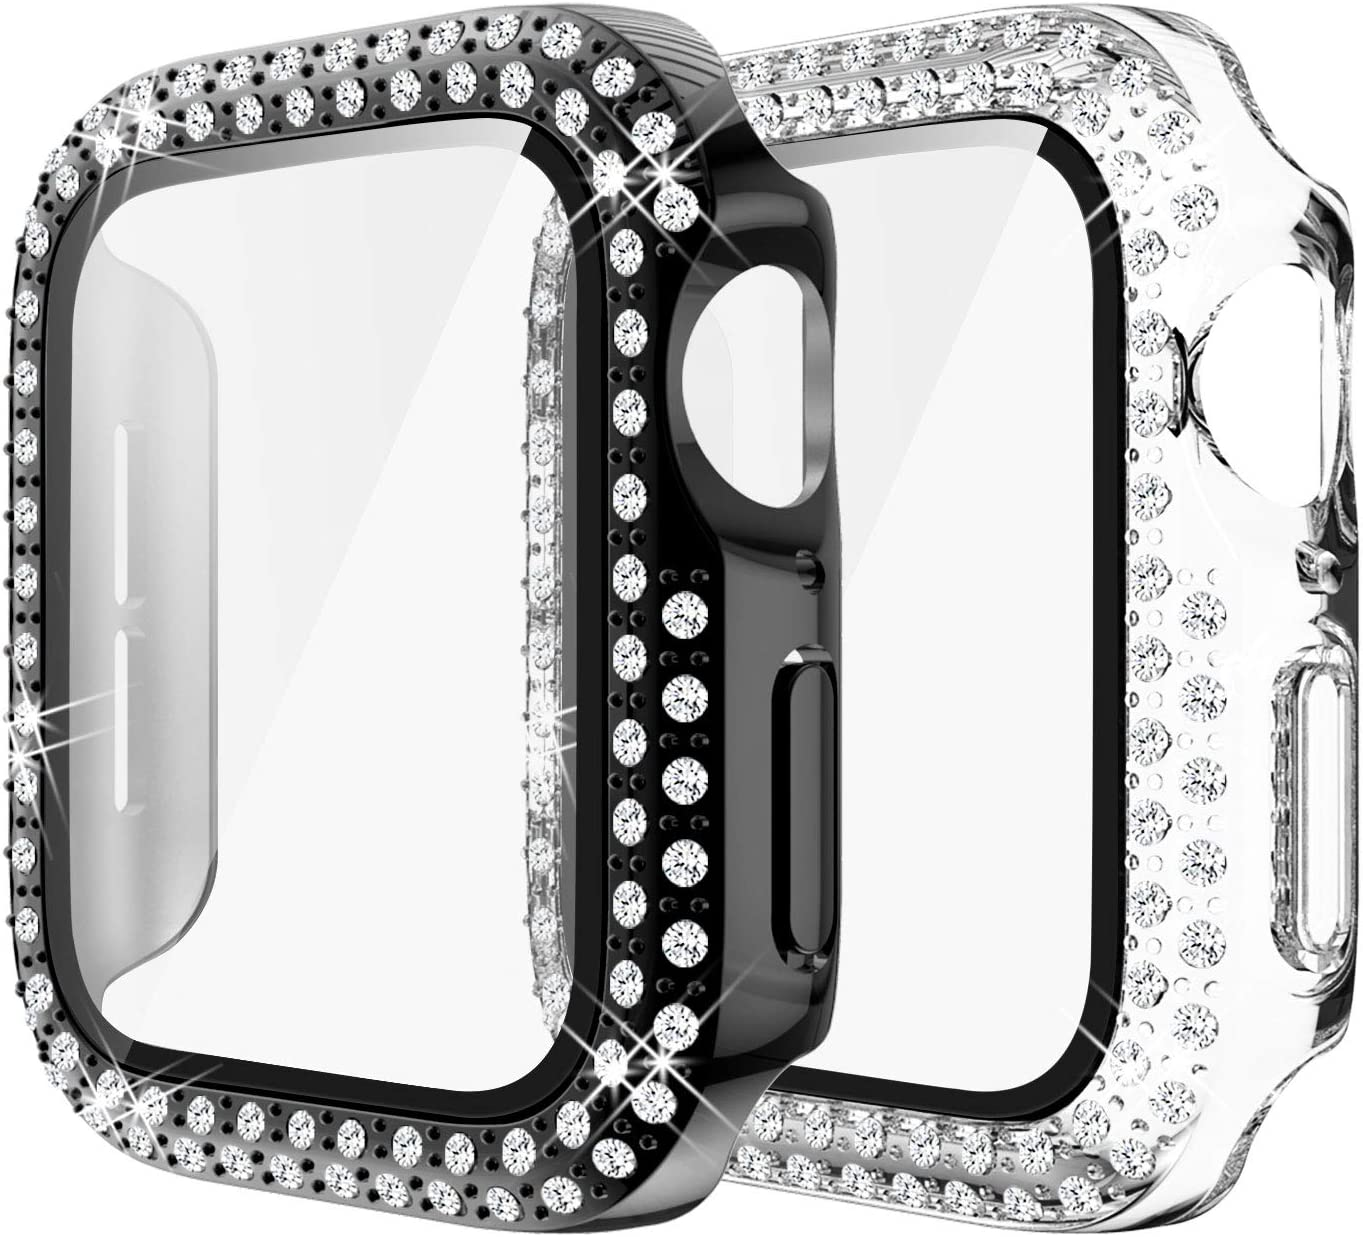 Yolovie (2-Pack) Compatible for Apple Watch Case with Screen Protector 44mm Series 6/5/4/SE, Bling Cover Diamonds Rhinestone Bumper Protective Frame for iWatch Girl Women (Clear/Black)